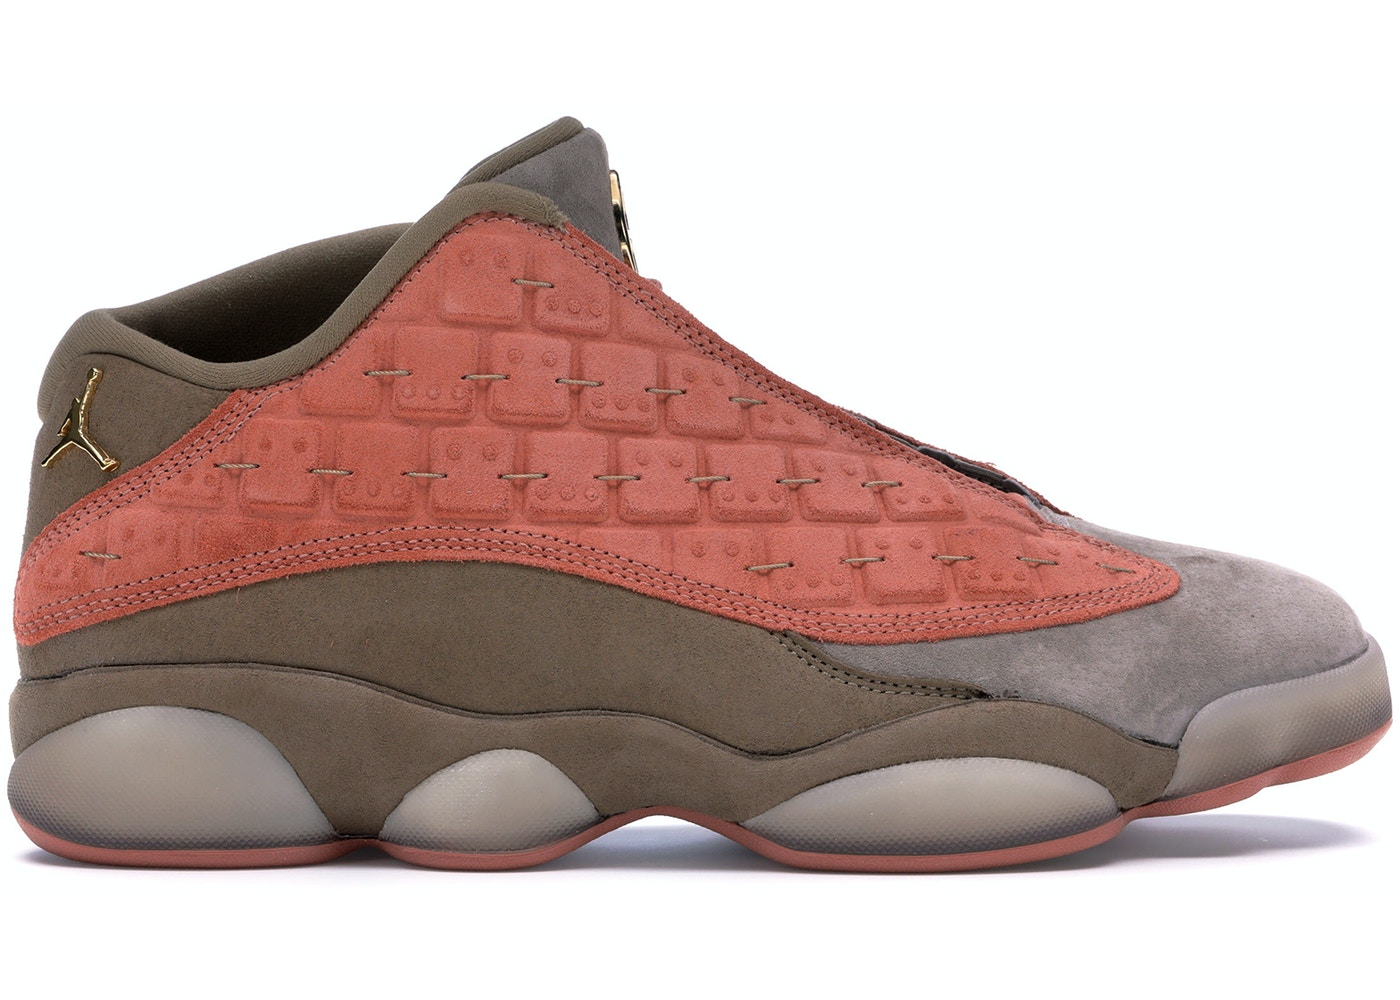 f33babbfeea Jordan 13 Retro Low Clot Sepia Stone - AT3102-200